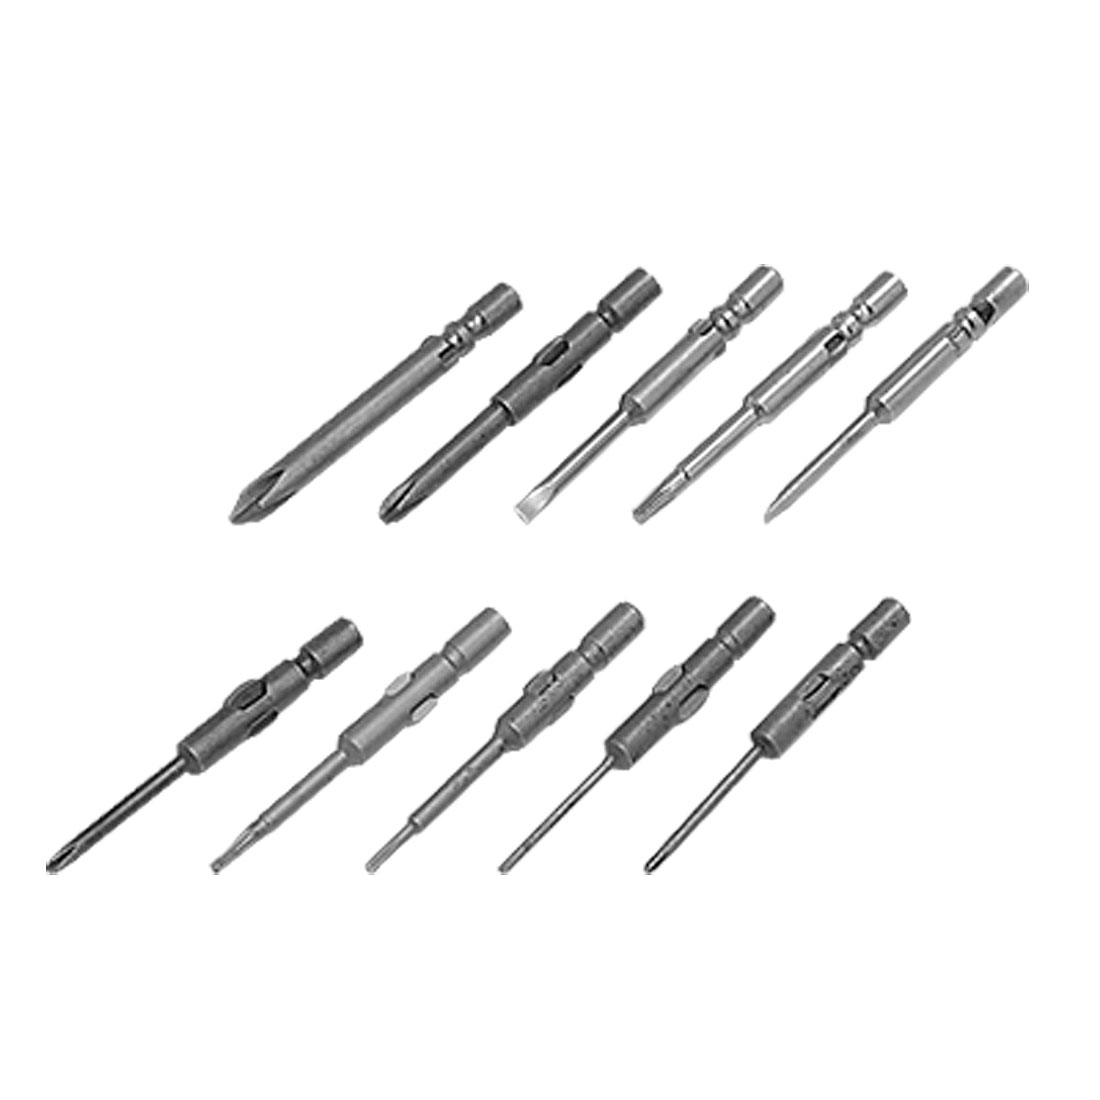 10 in 1 Mini Precision Magnetic Screwdriver Bits Set